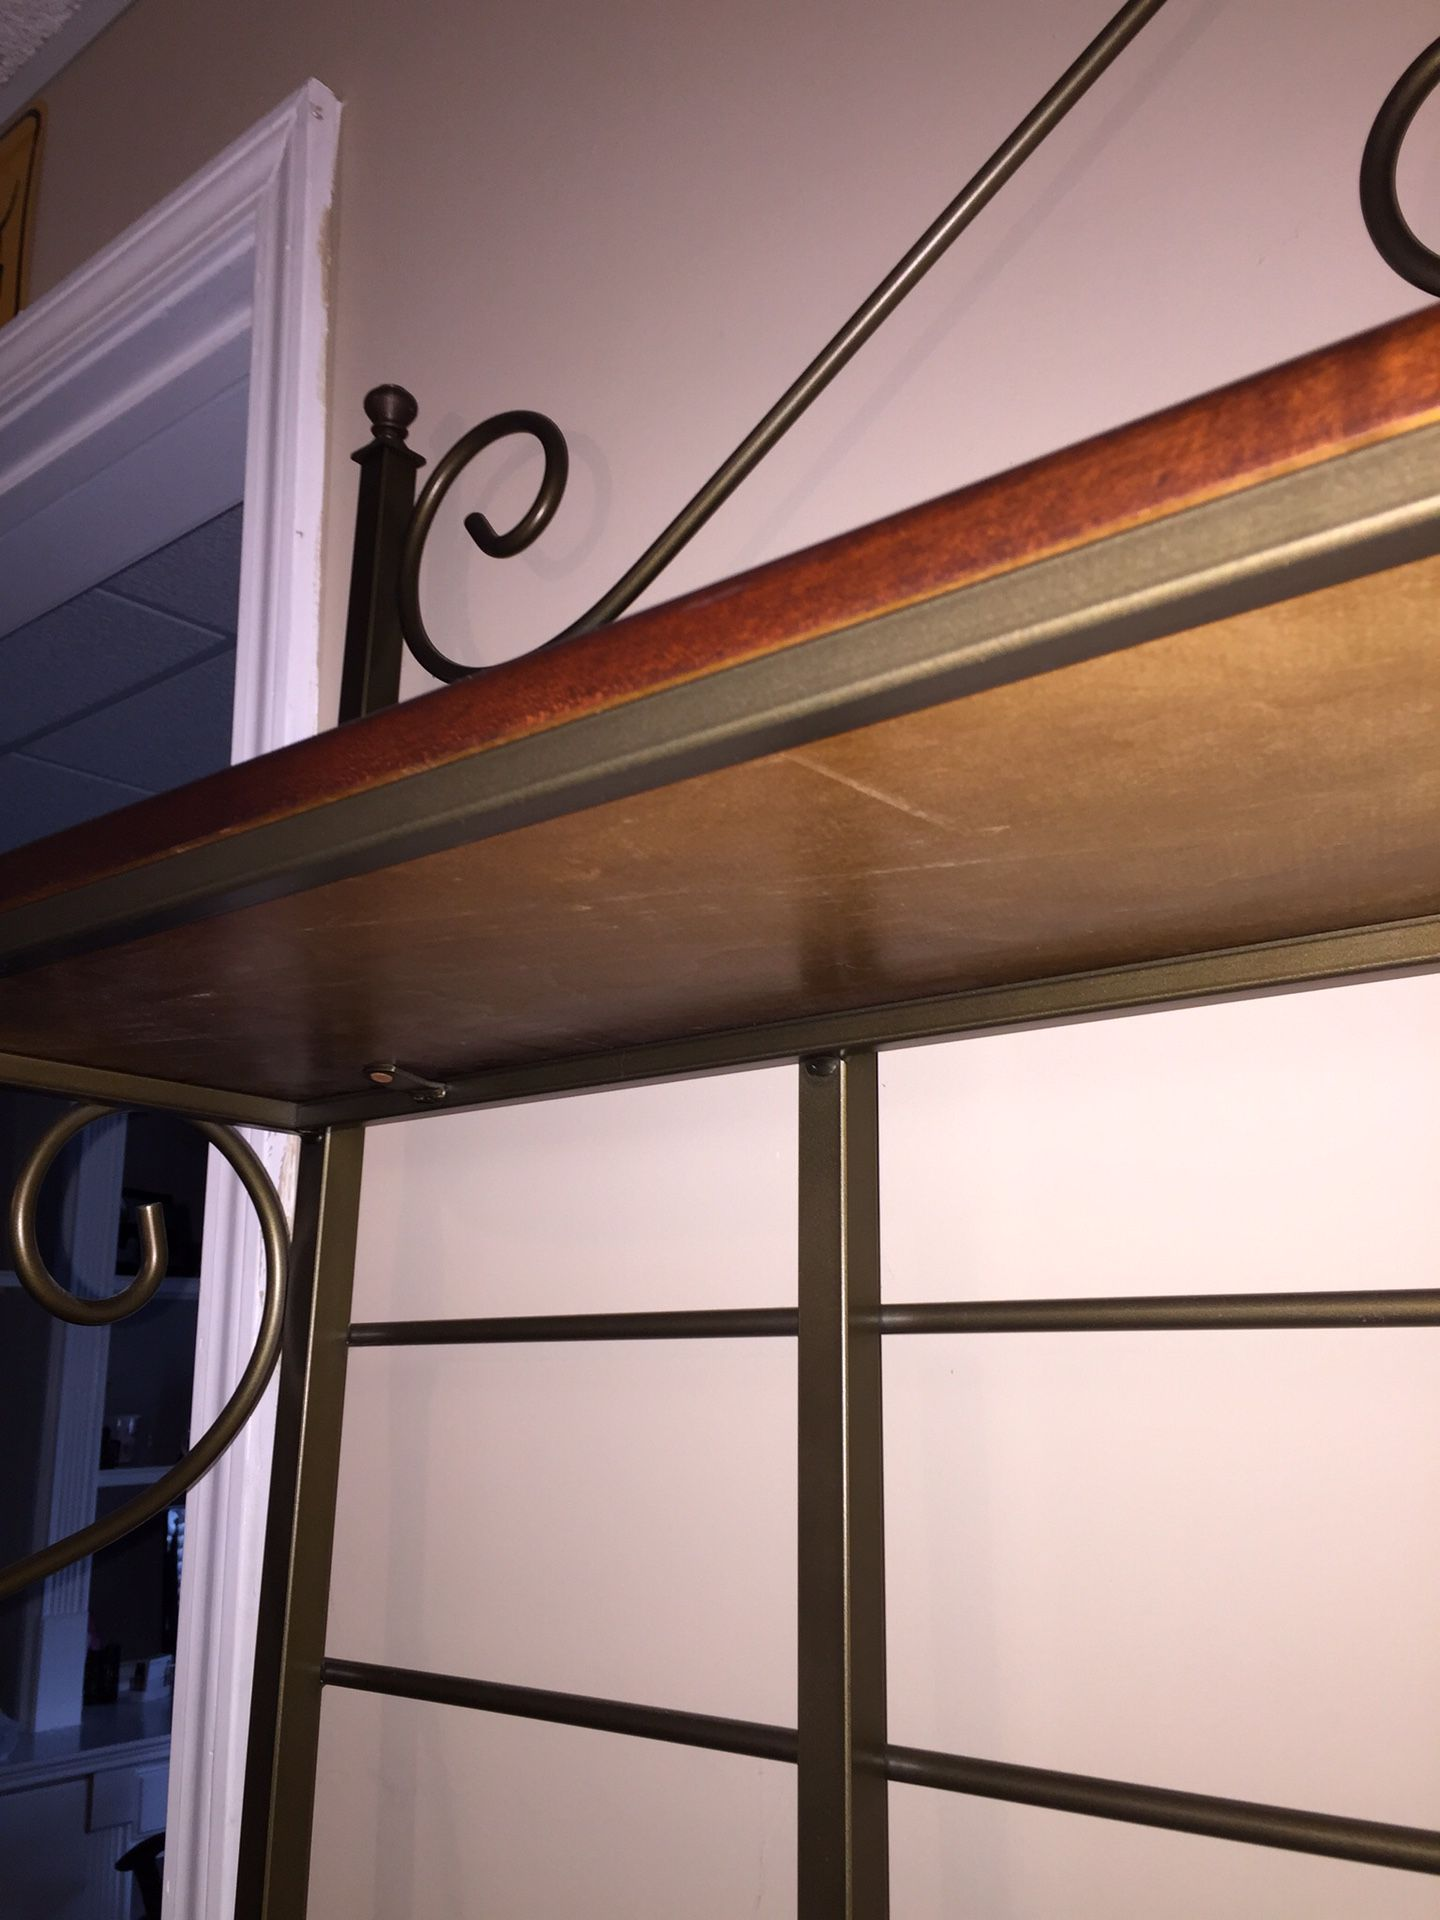 Bakers rack very high quality paid $1200 asking $550